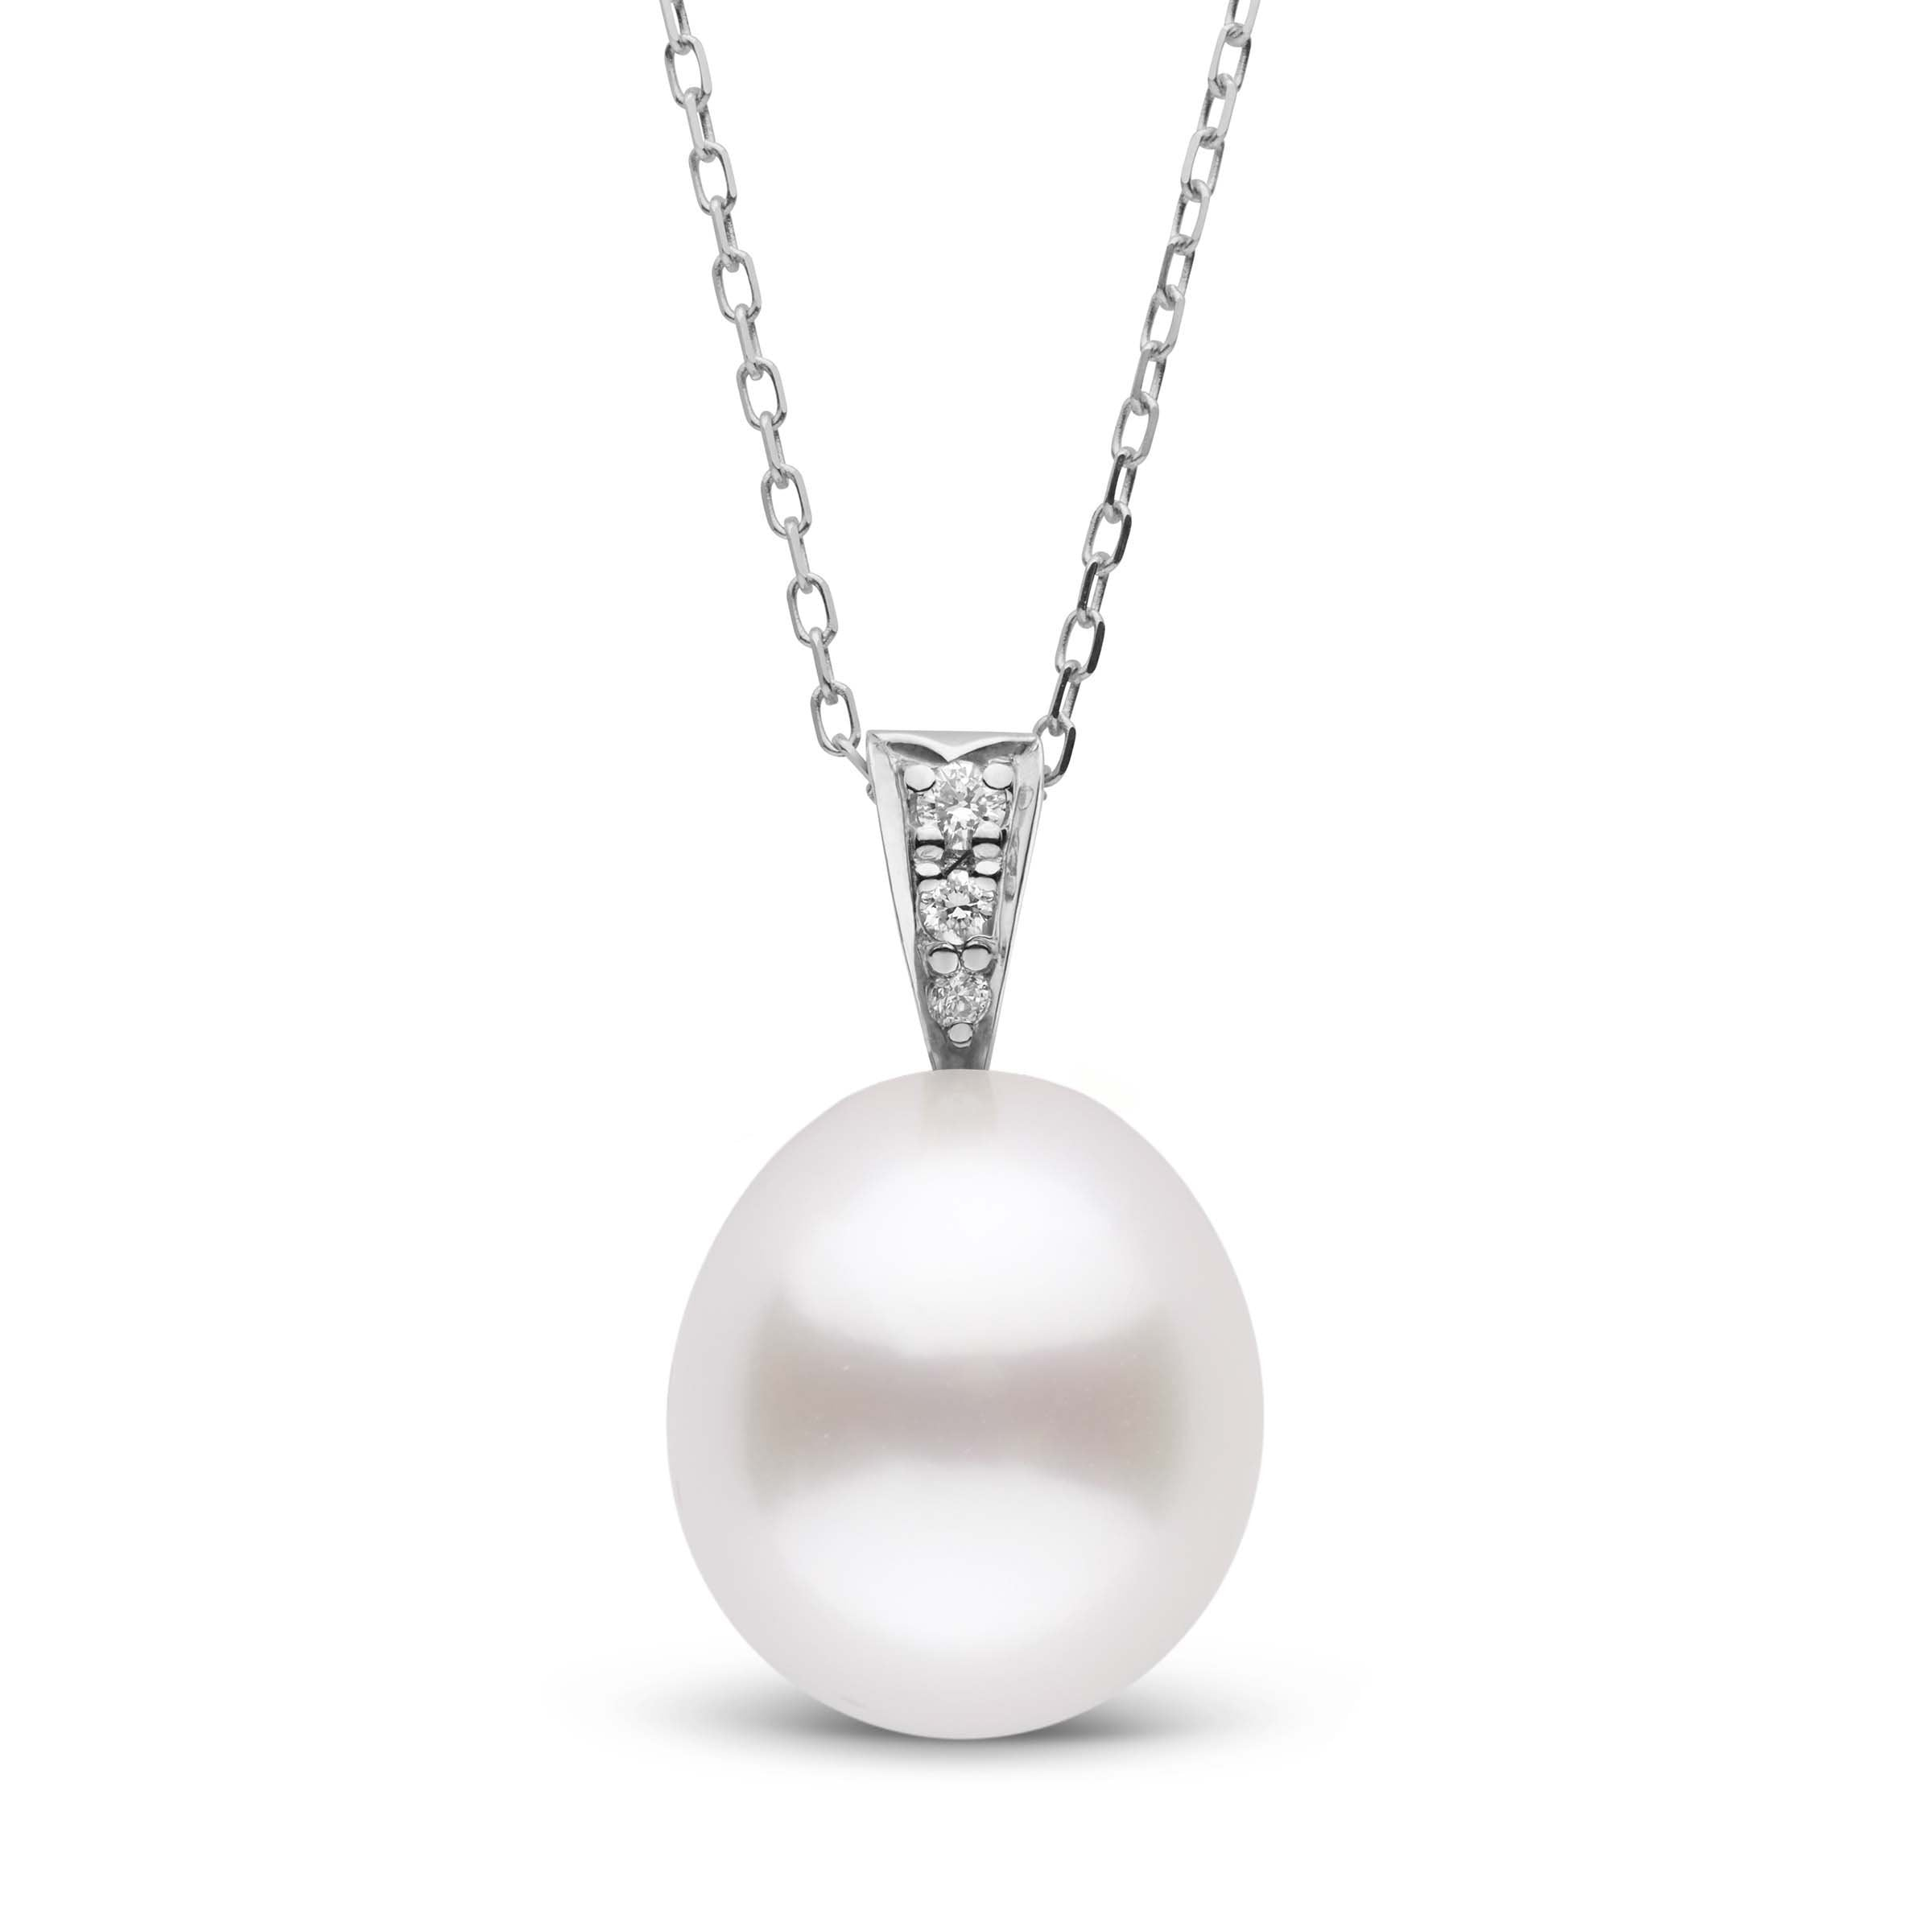 Desire Collection White South Sea Drop 11.0-12.0 mm Pearl and Diamond Pendant